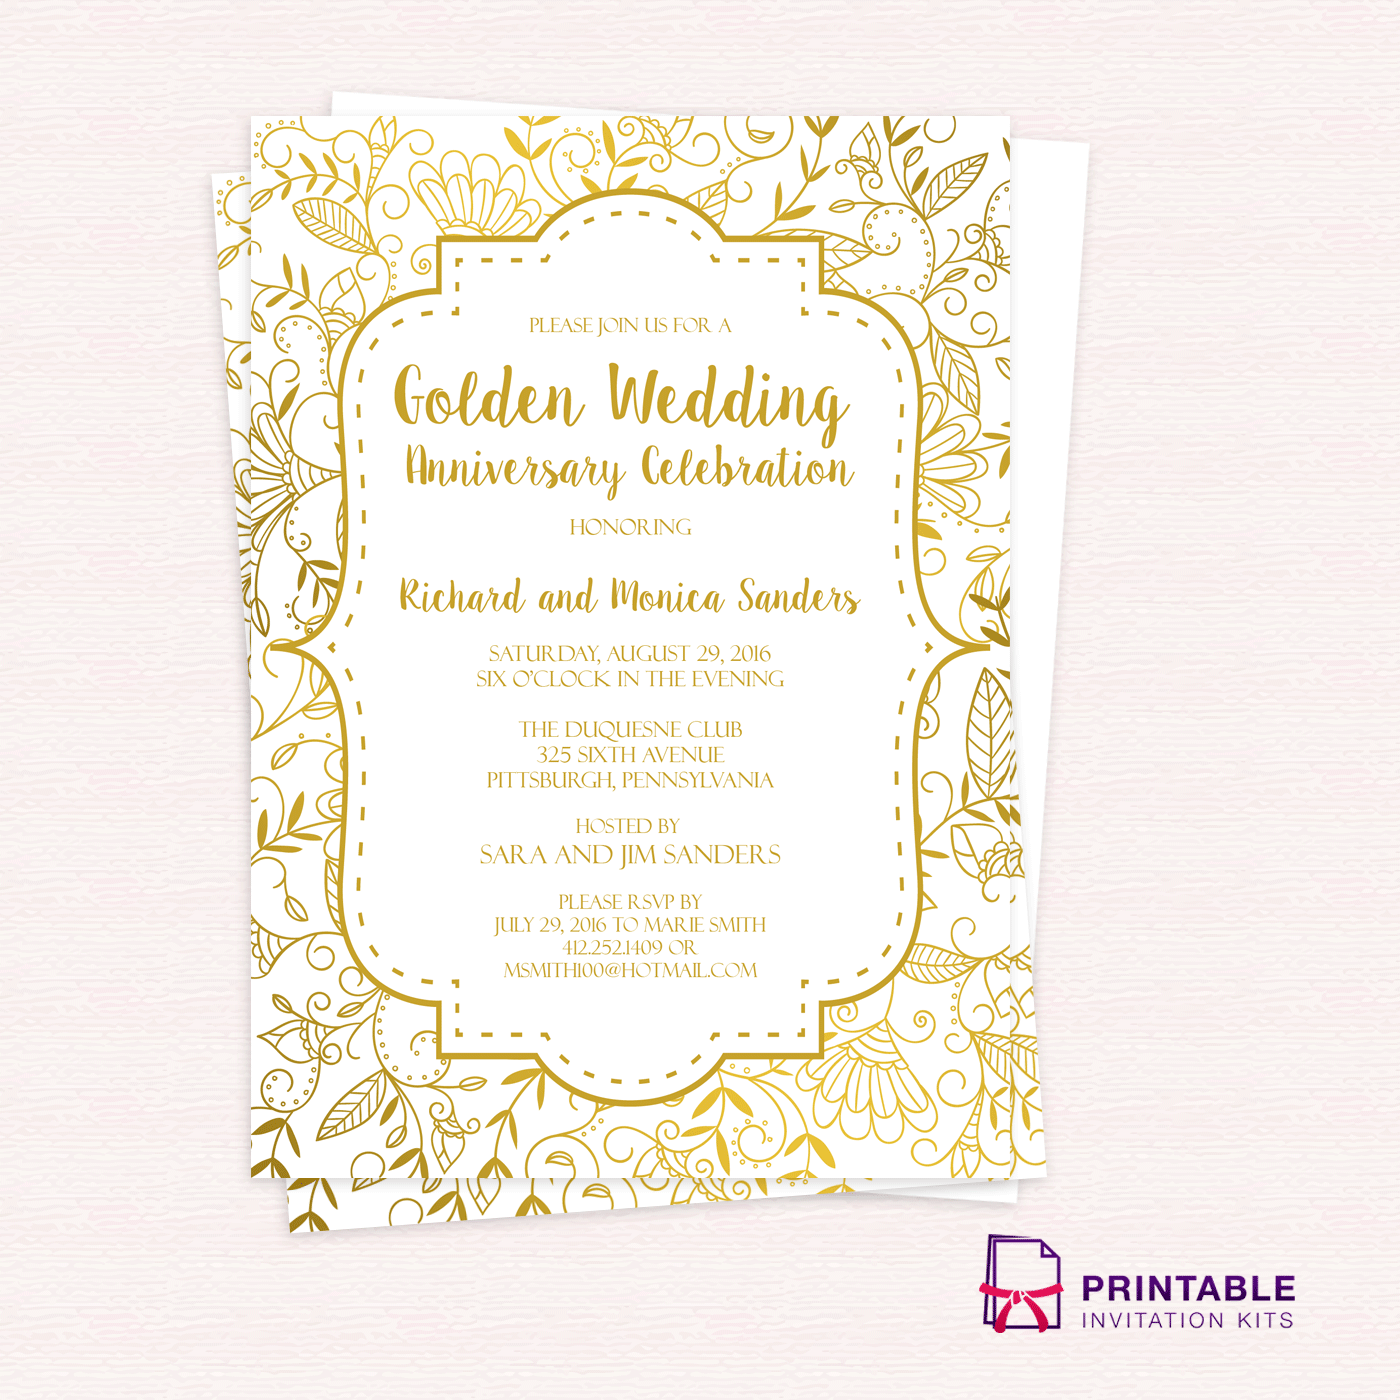 Printable Invitation Template Peellandfmtk - Wedding invitation templates: wedding invitation downloadable templates